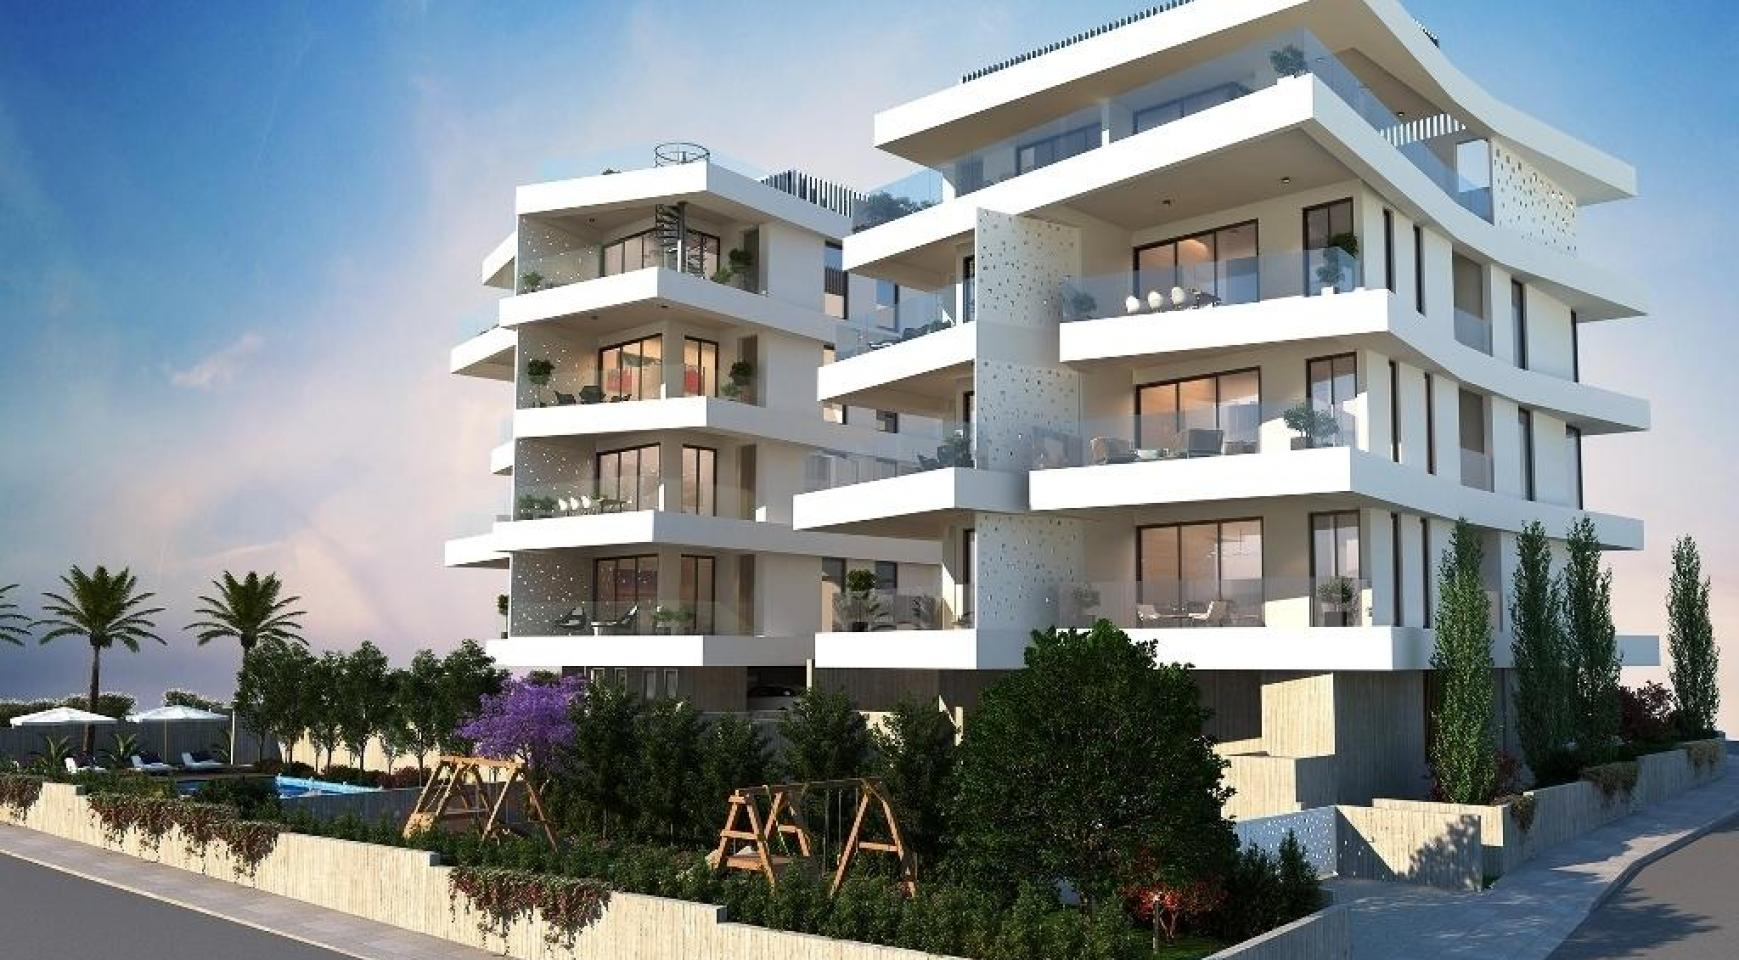 New 3 Bedroom Penthouse in a Contemporary Complex in Germasogeia - 4